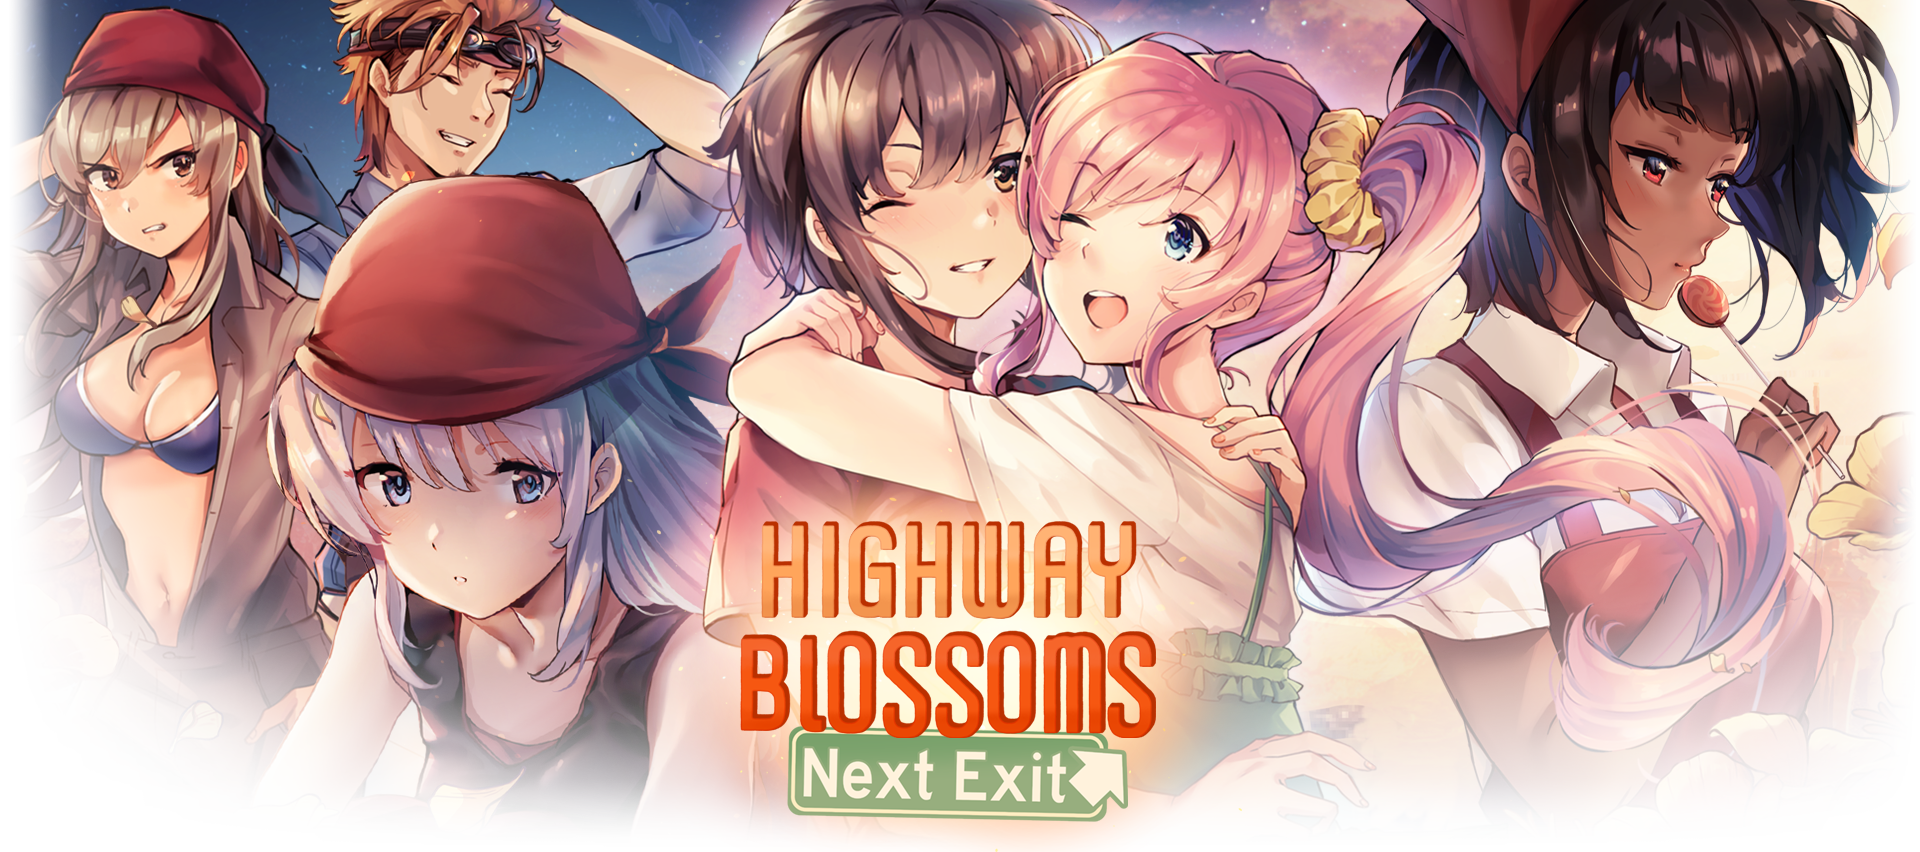 Highway Blossoms: Next Exit